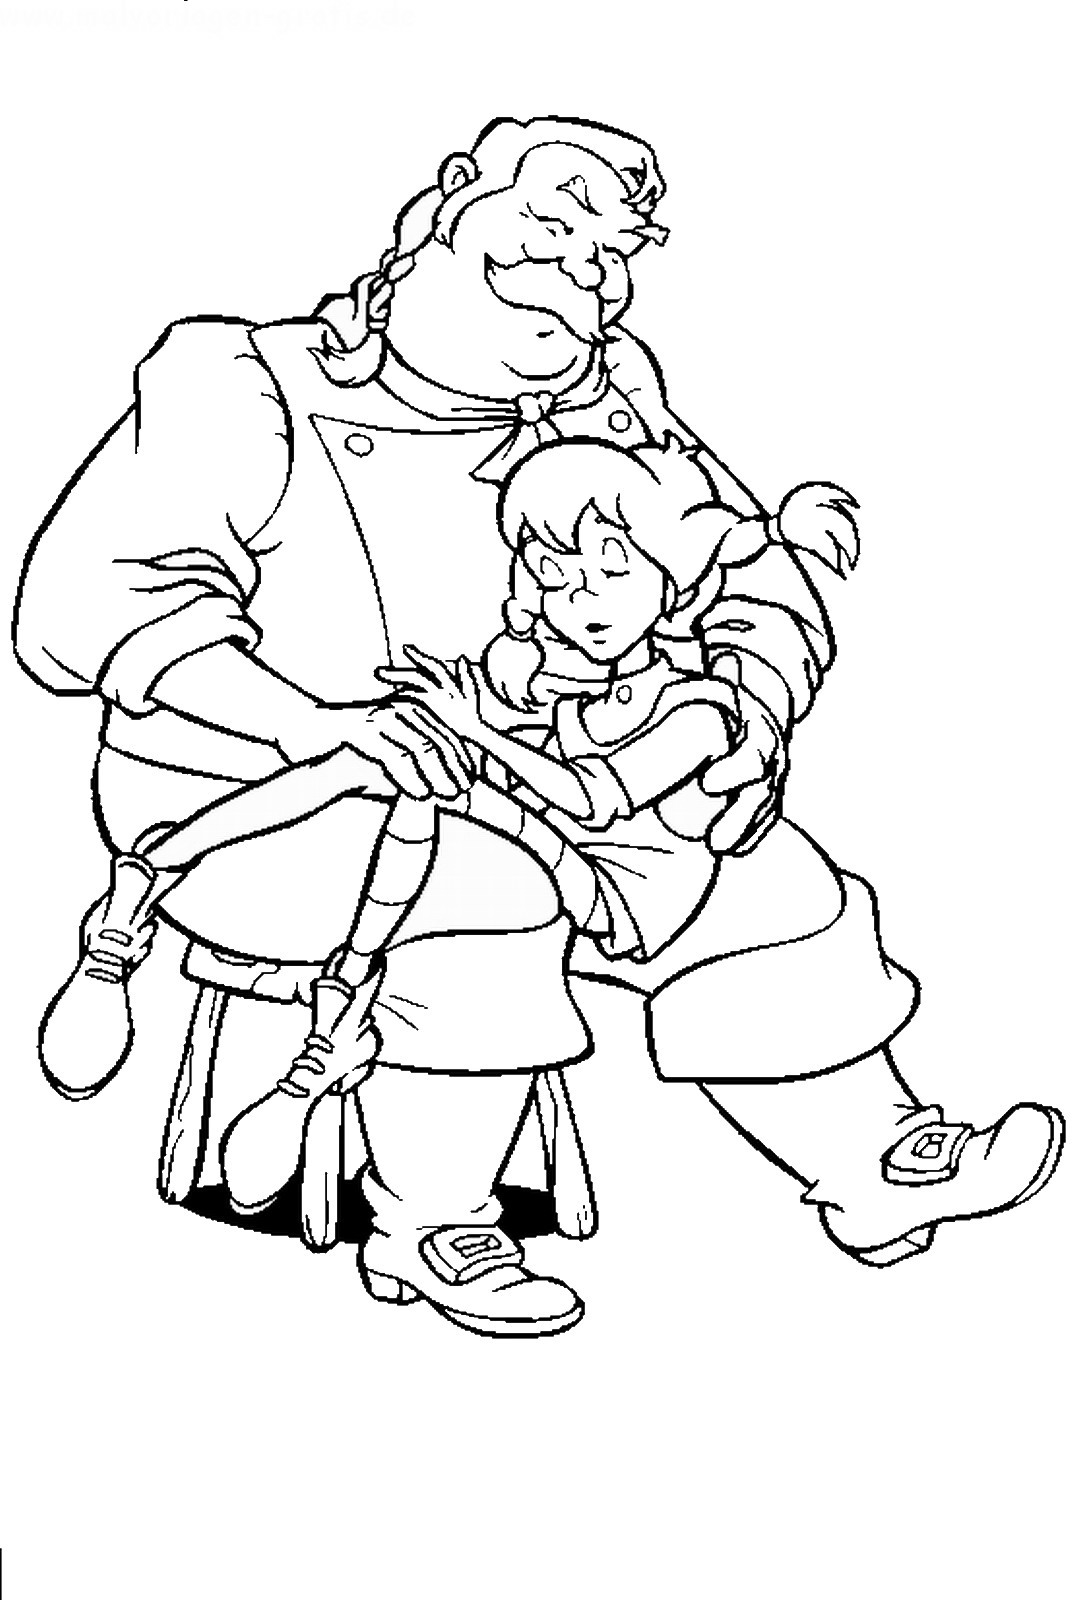 Pippi Longstocking Coloring Pages